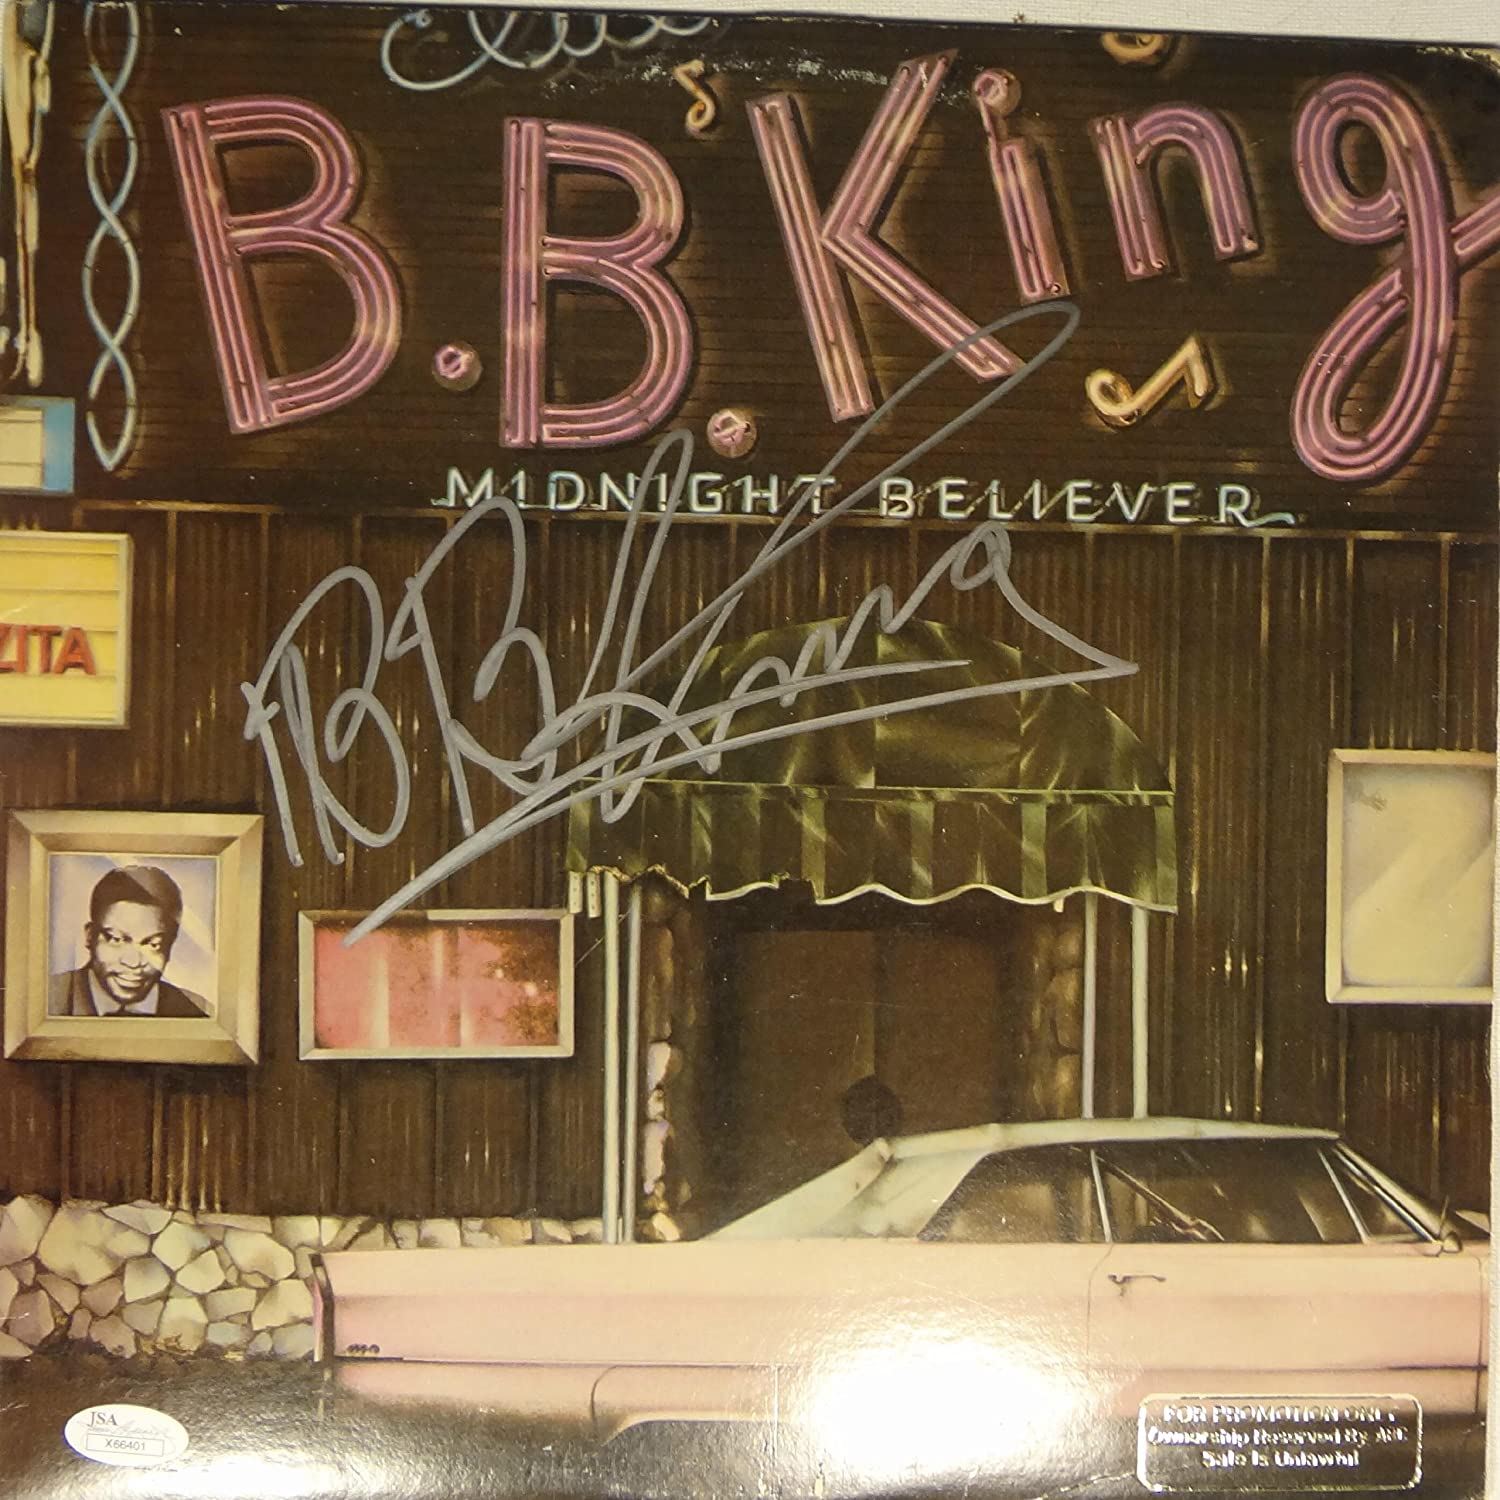 все цены на Signed B.B. King Autographed 1978 Midnight Believer Lp Album Jsa Loa # X66401 онлайн